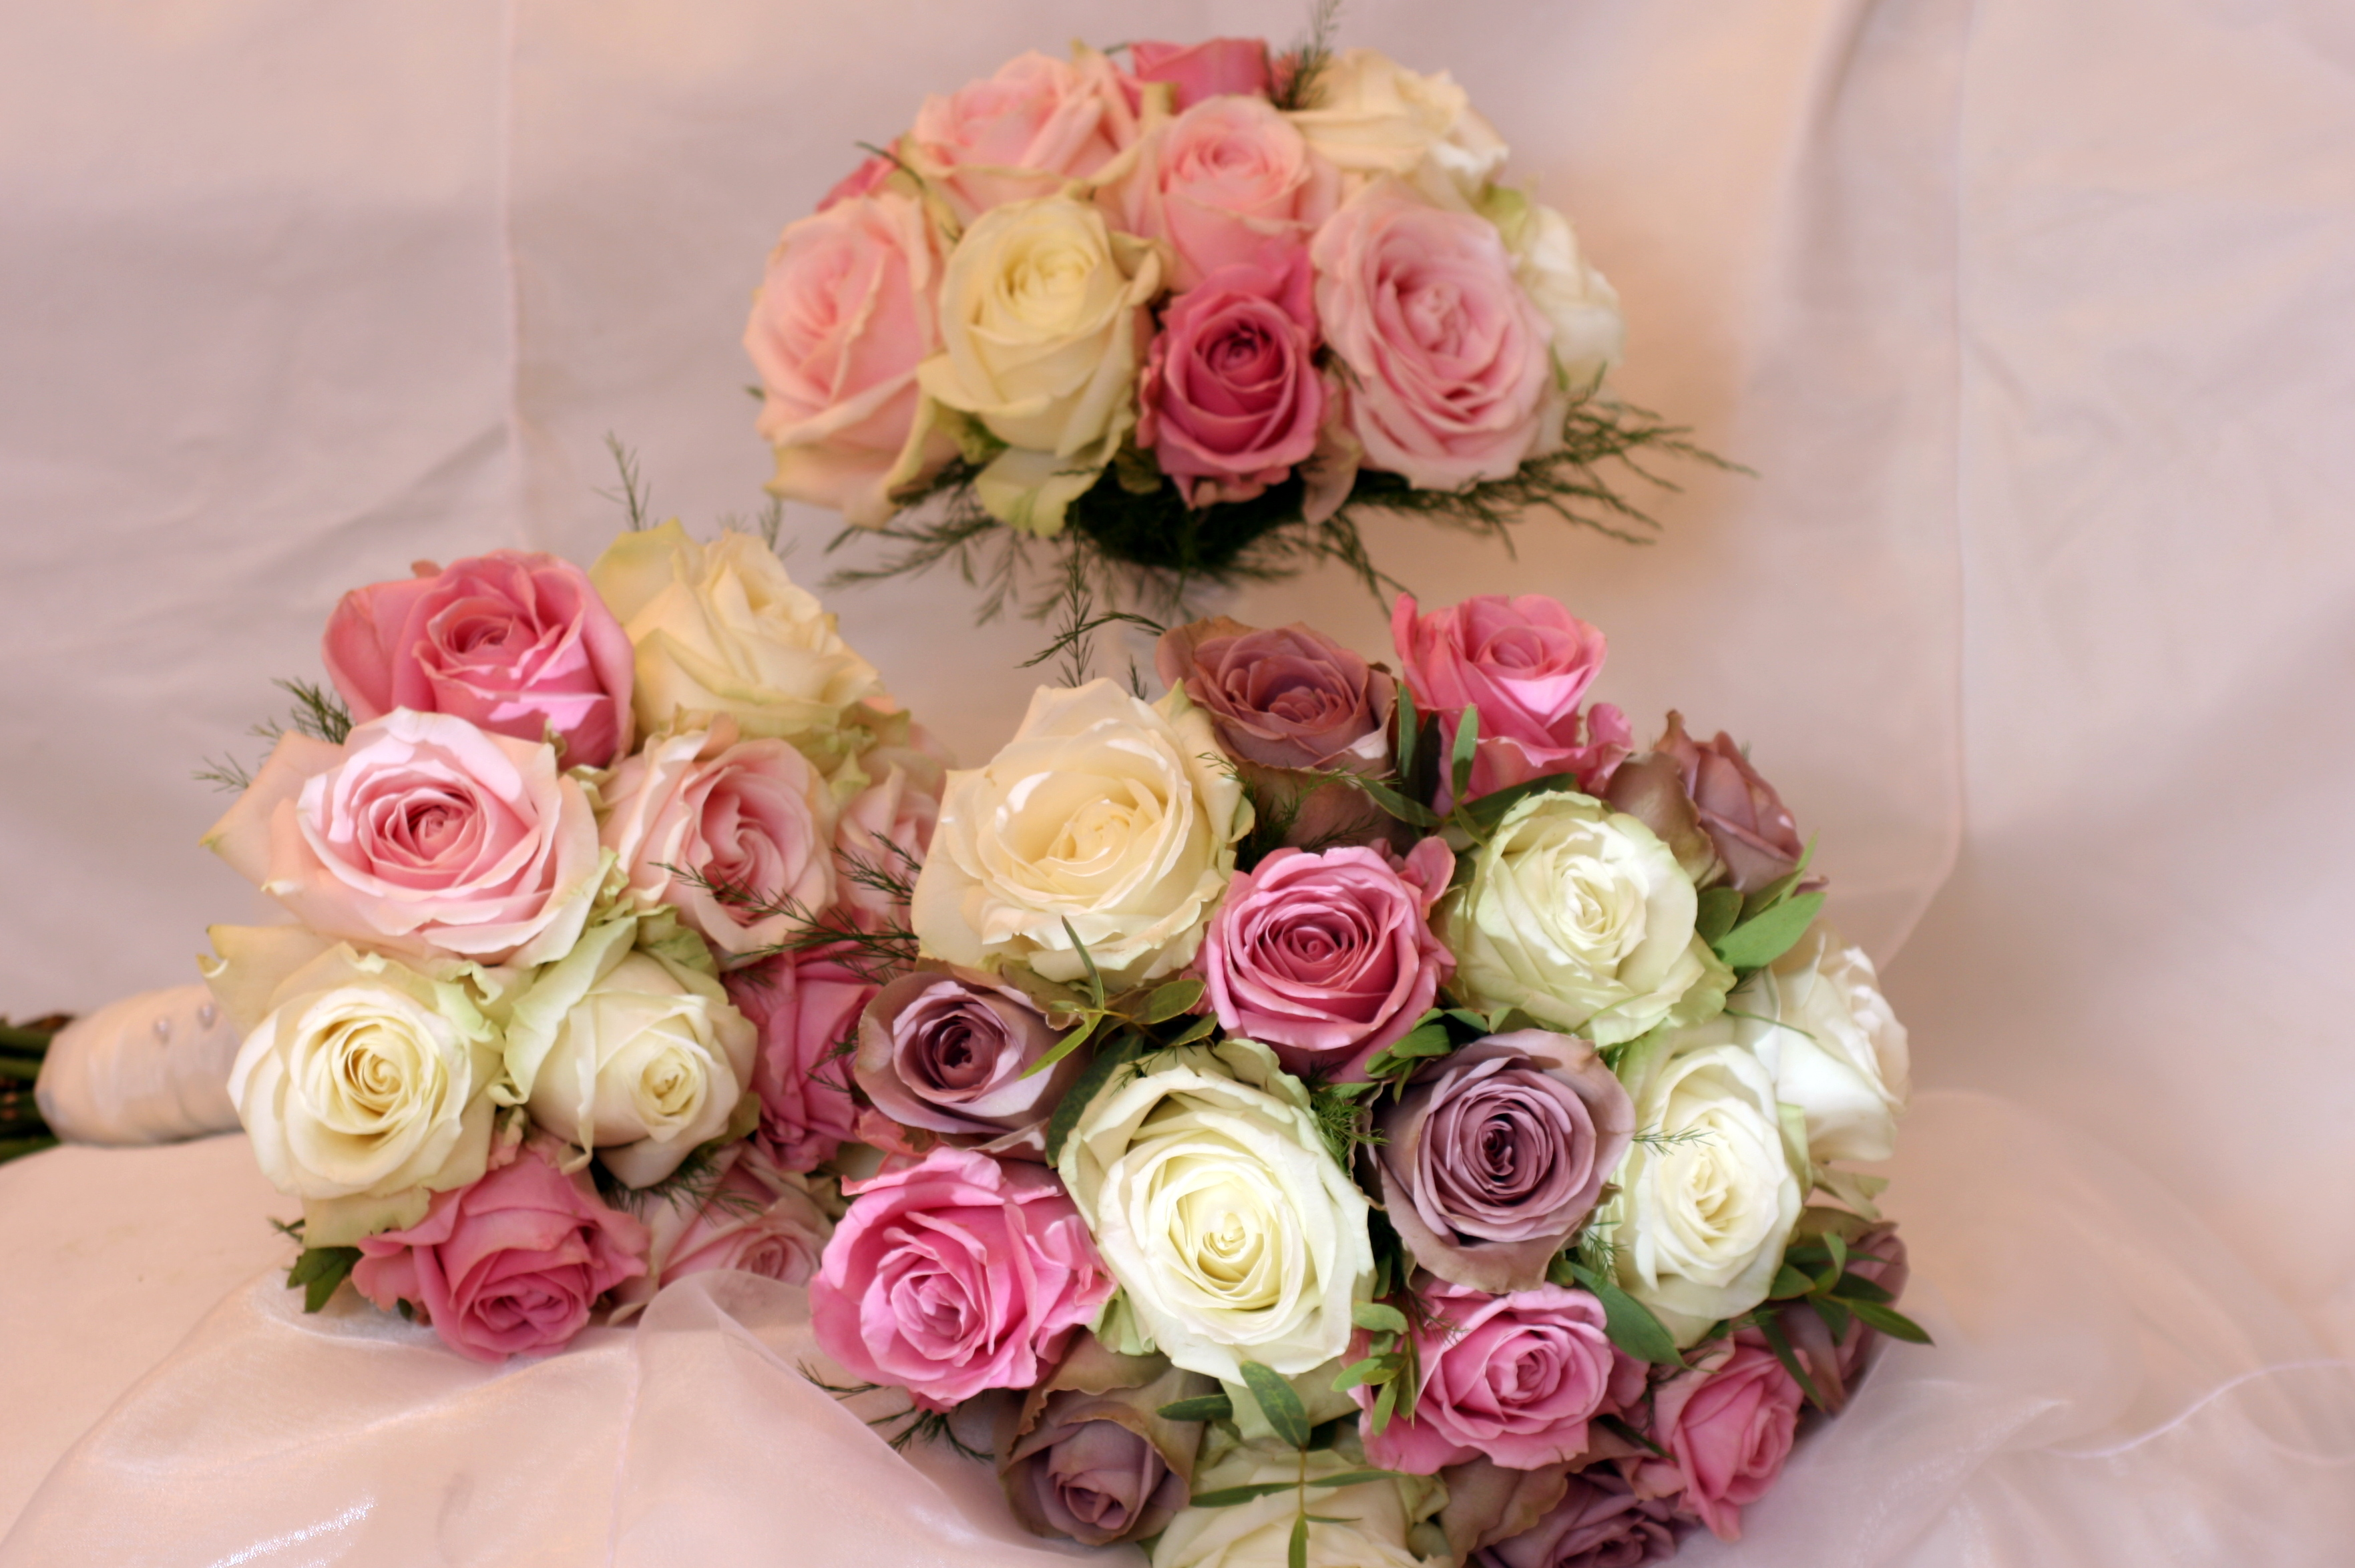 Brides and bridesmaid flowers